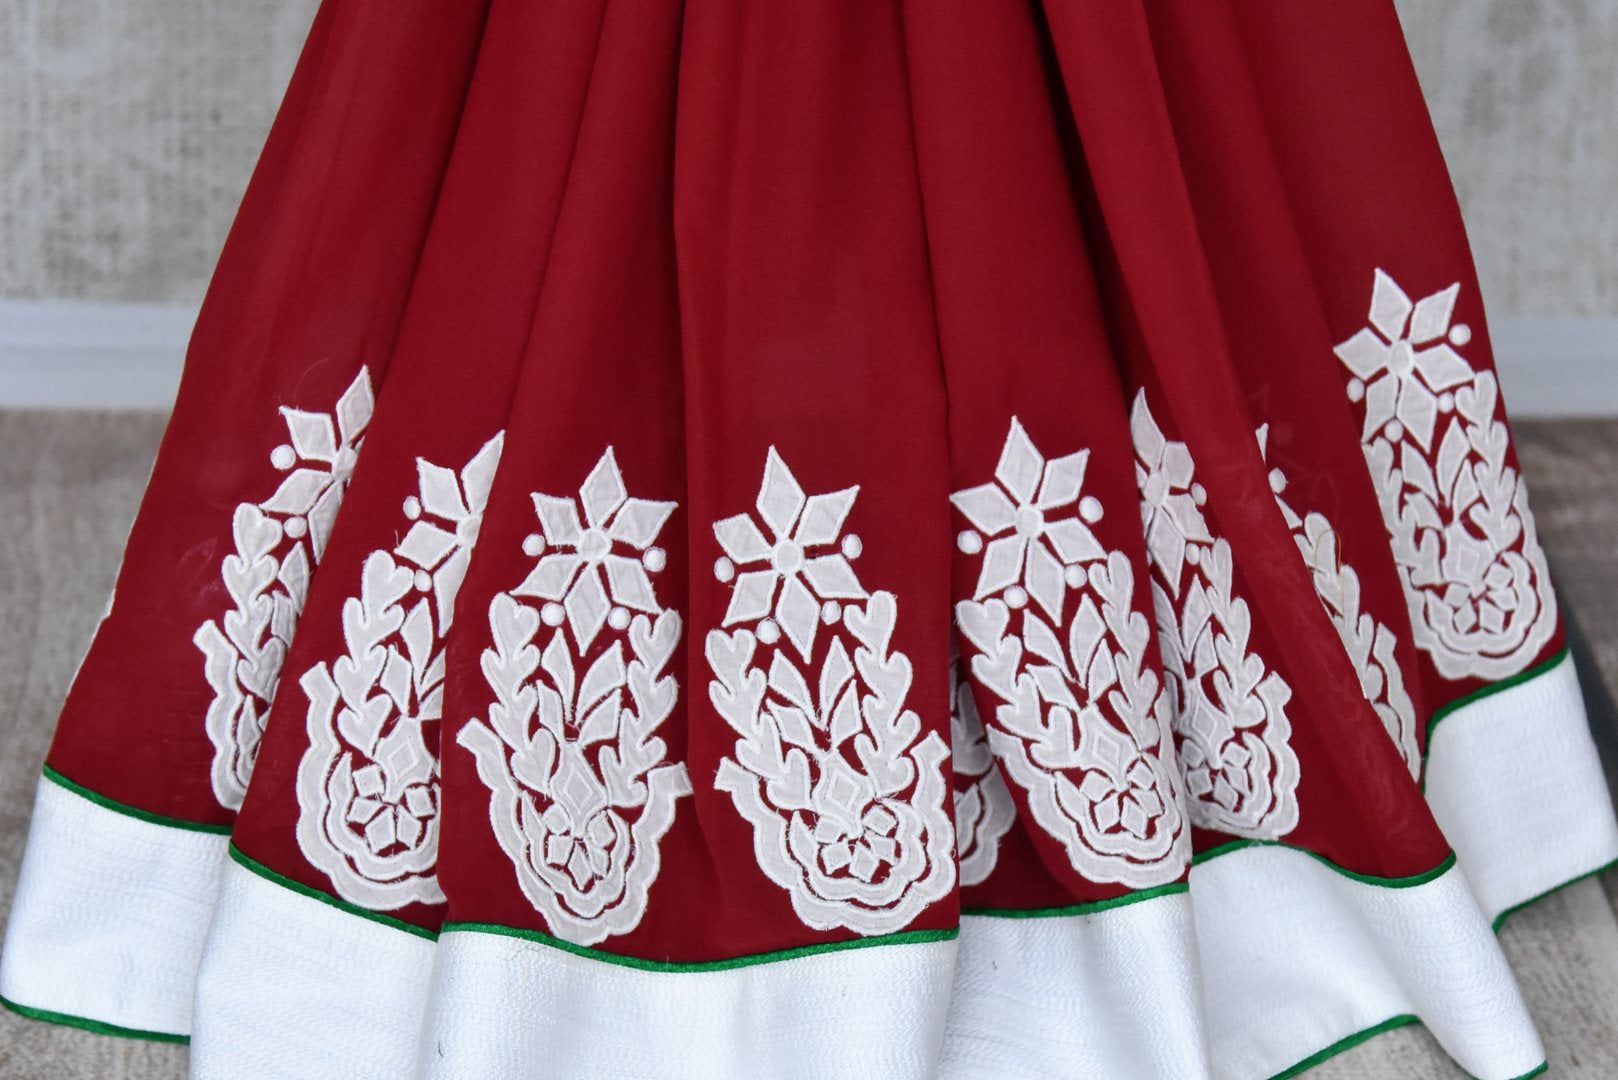 Buy maroon linen raw silk applique saree online in USA with white border from Pure Elegance. Let your ethnic style be one of a kind with an exquisite variety of Indian handloom sarees, pure silk sarees, designer sarees from our exclusive fashion store in USA.-pleats